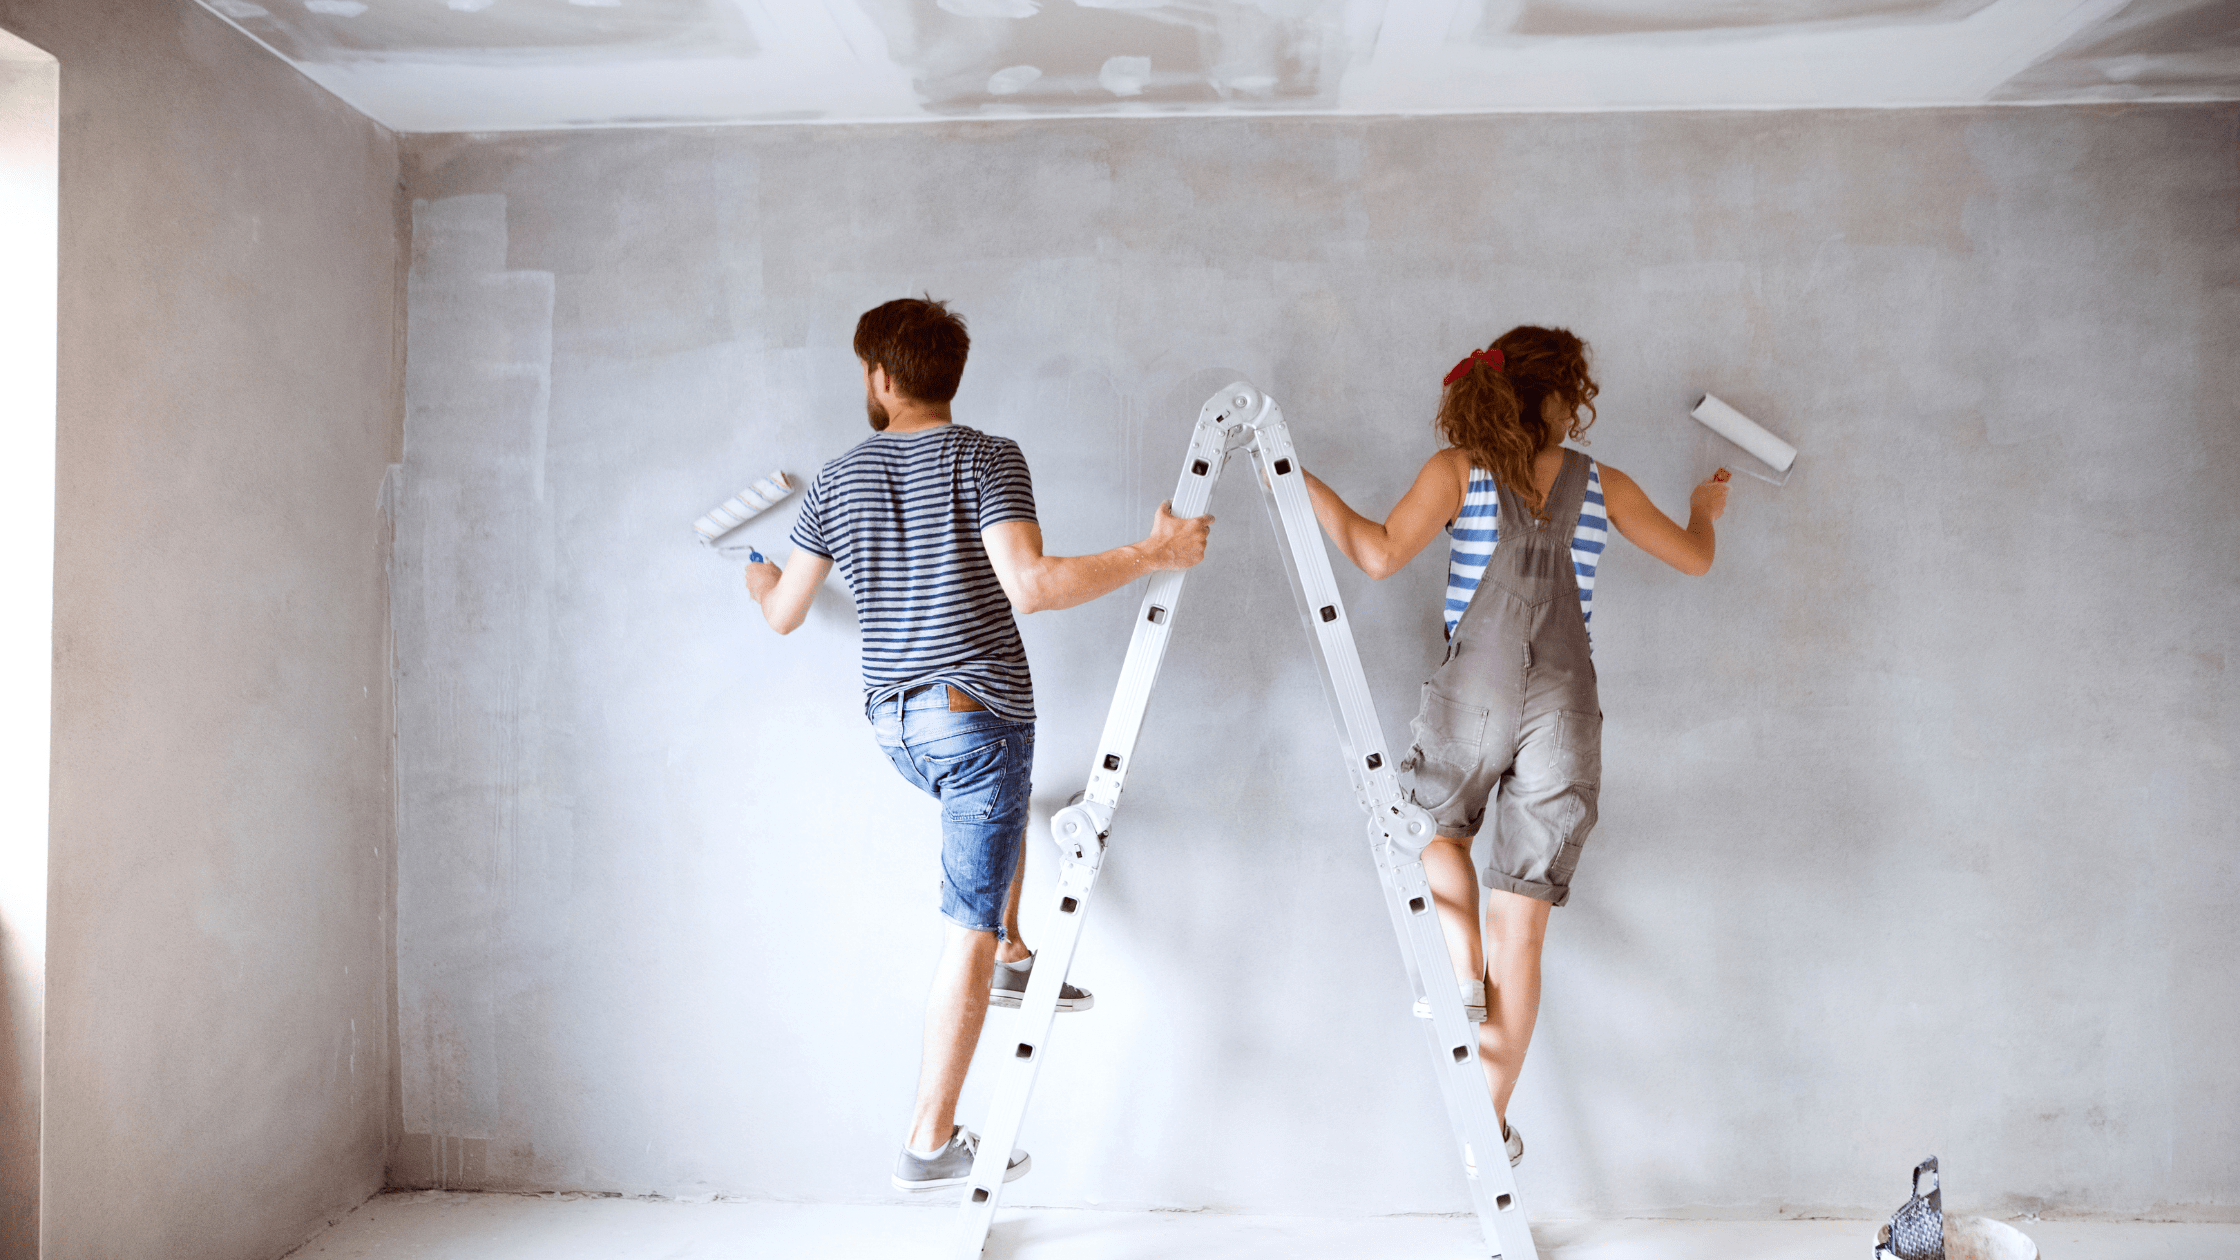 How To Paint Garage Walls Step By Step: DIY Easy And Quick Tips